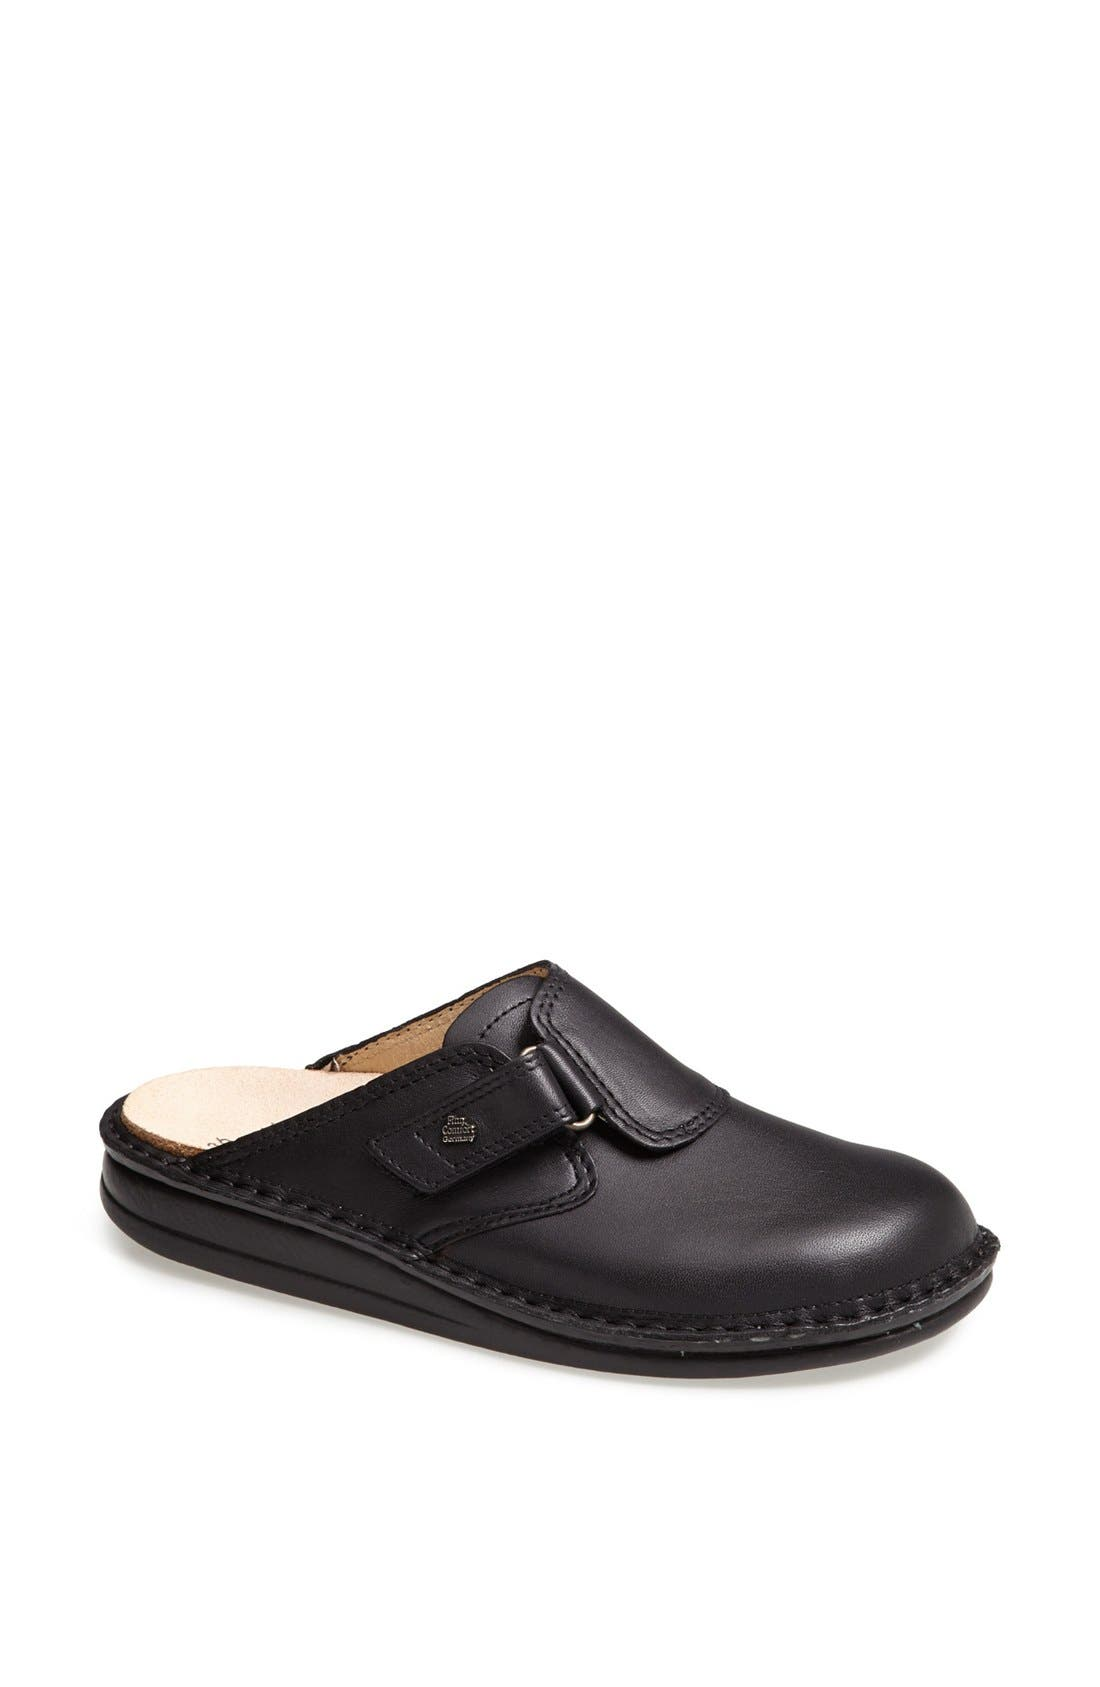 FINN COMFORT Venice Leather Clog